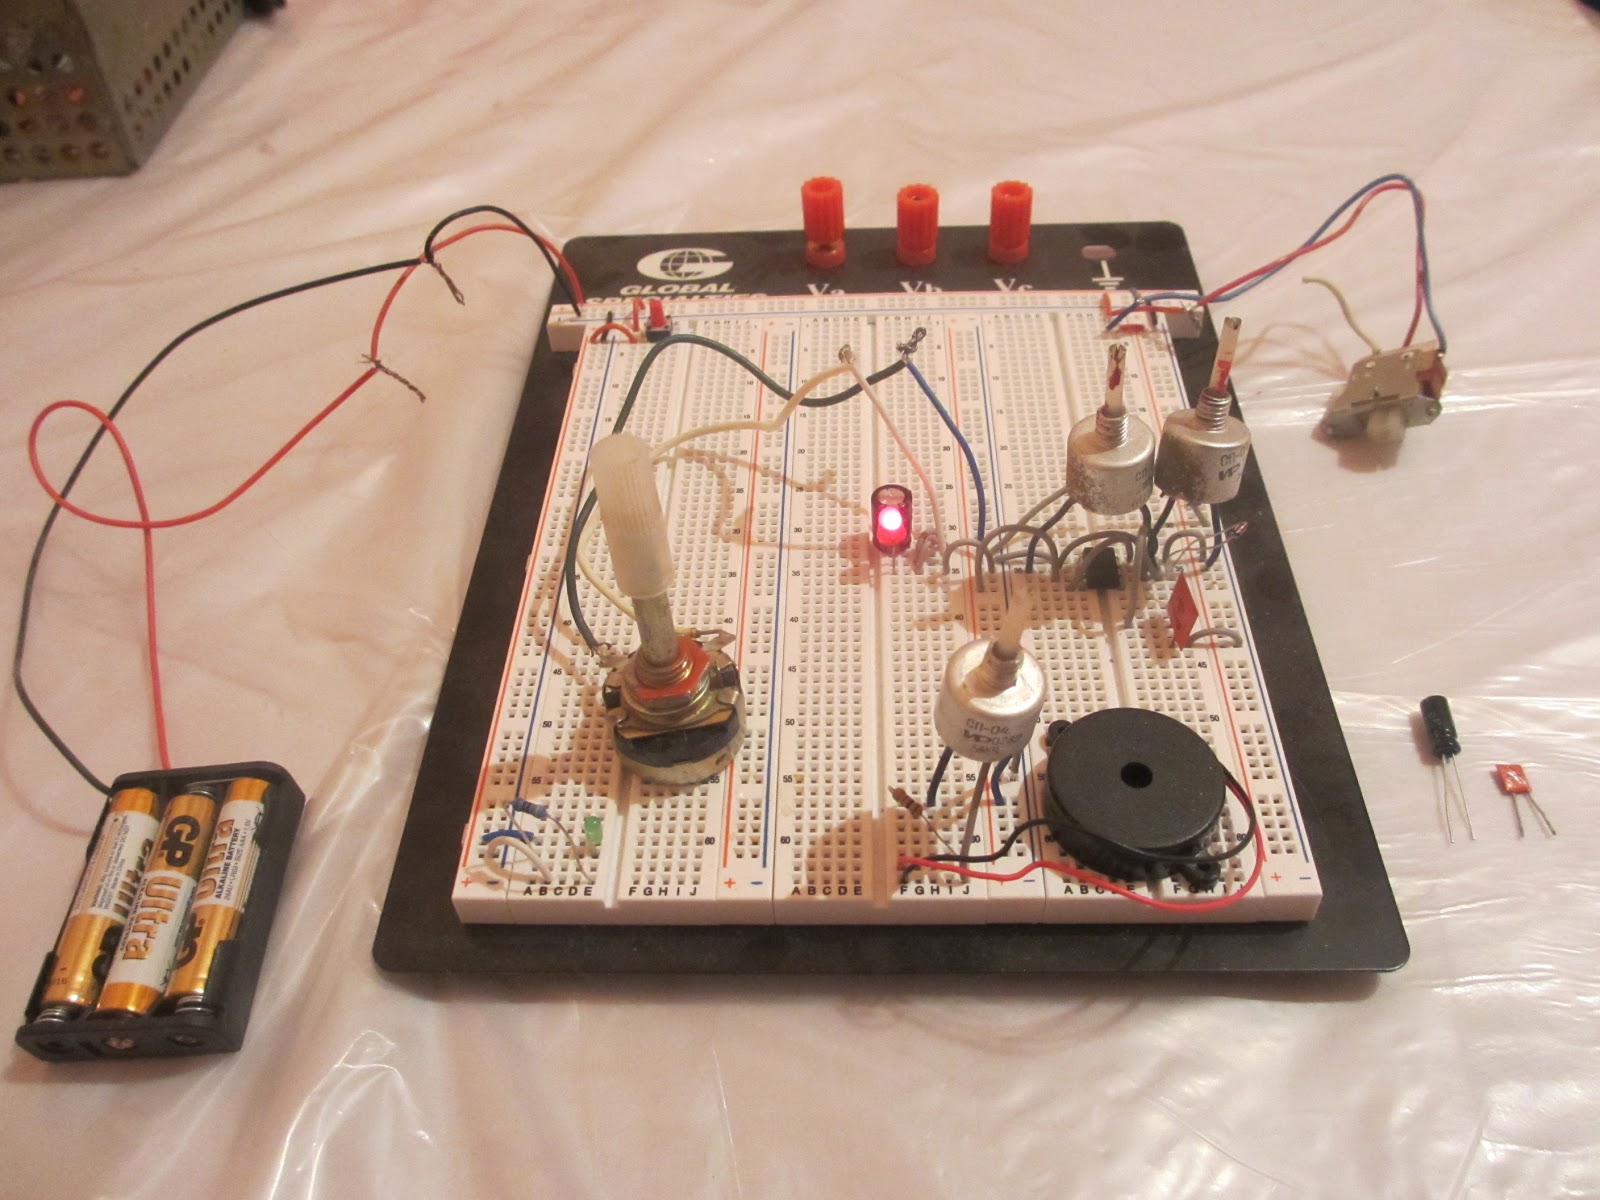 Joldoshs Electronic Projects 555 Timer Setup Based Electronics Proojects This Is Also A Good Idea For The Other Potentiometers So That And Led Dont Get Damaged Either